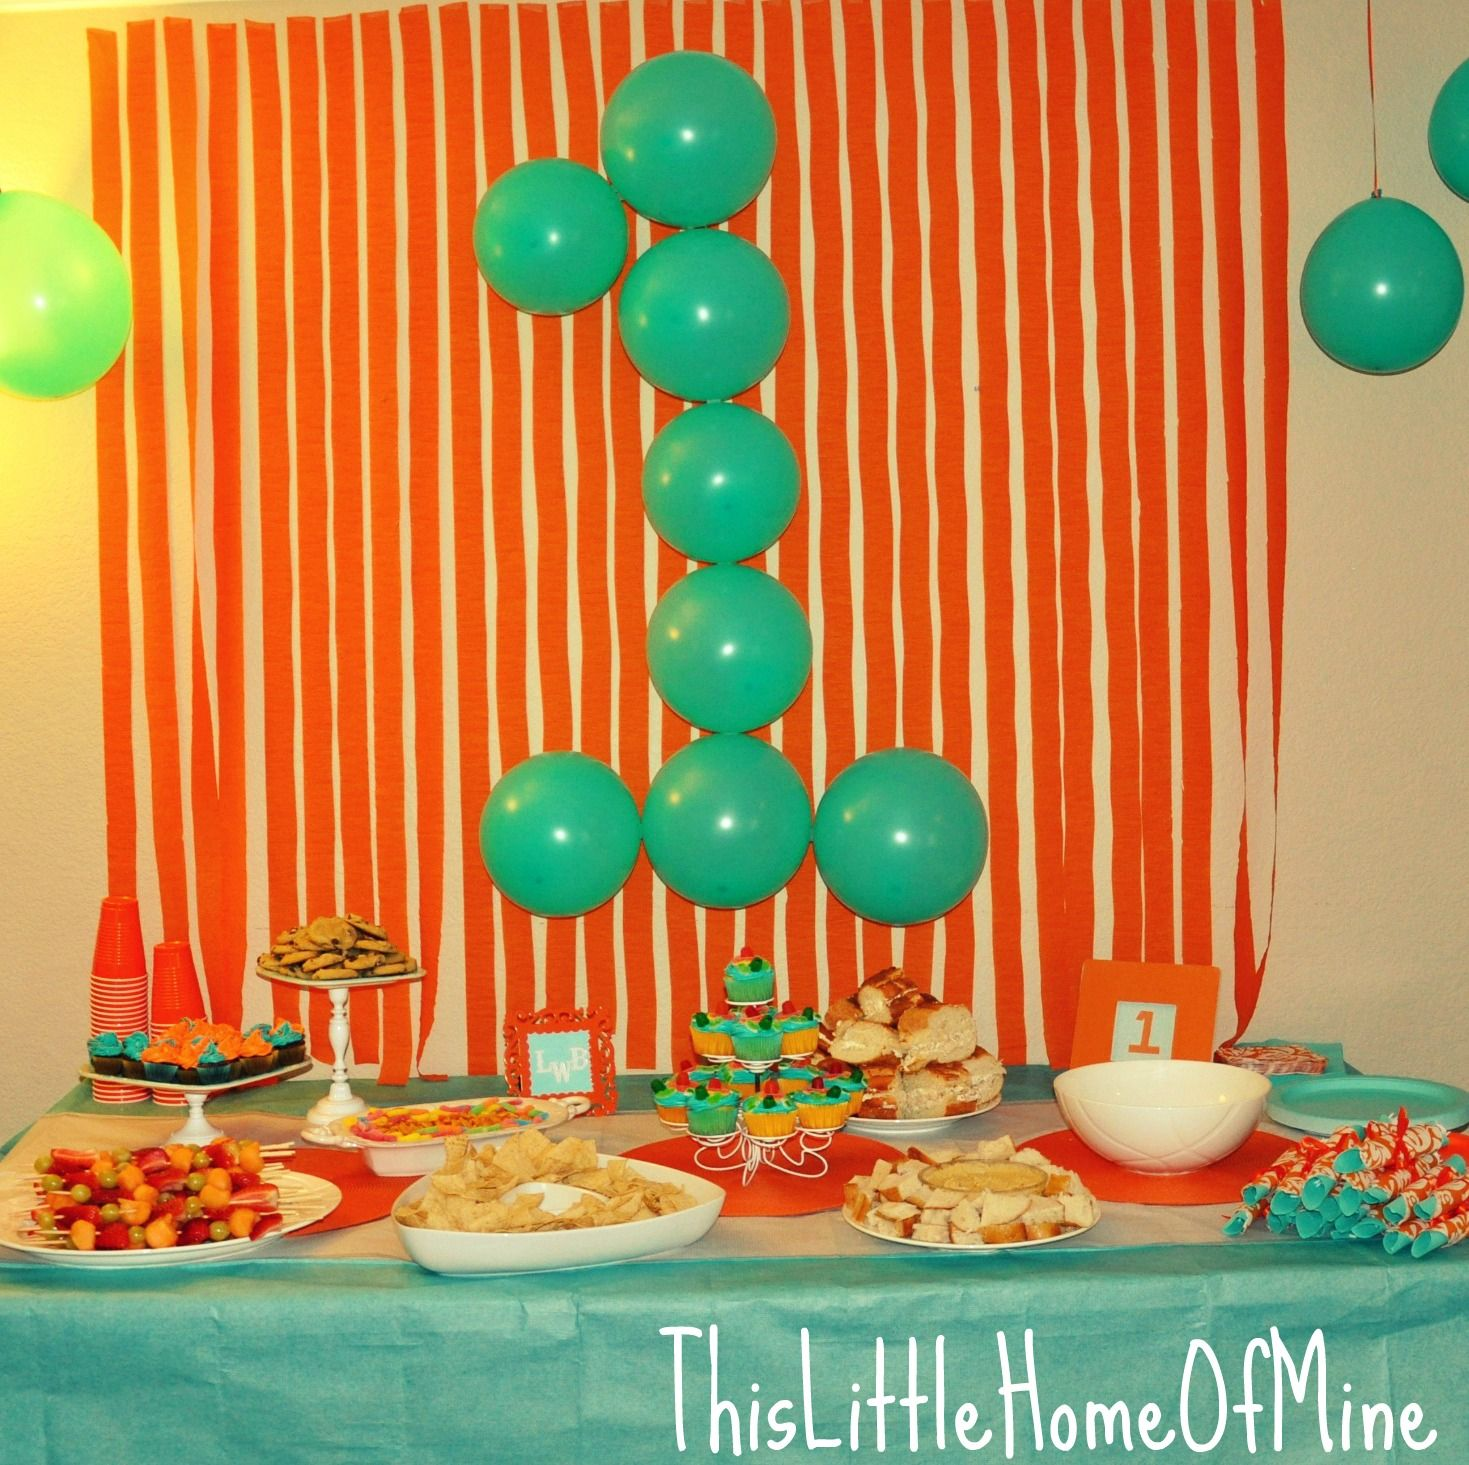 birthdaydecorationimagesathomeforhusbandbirthdaybirthday